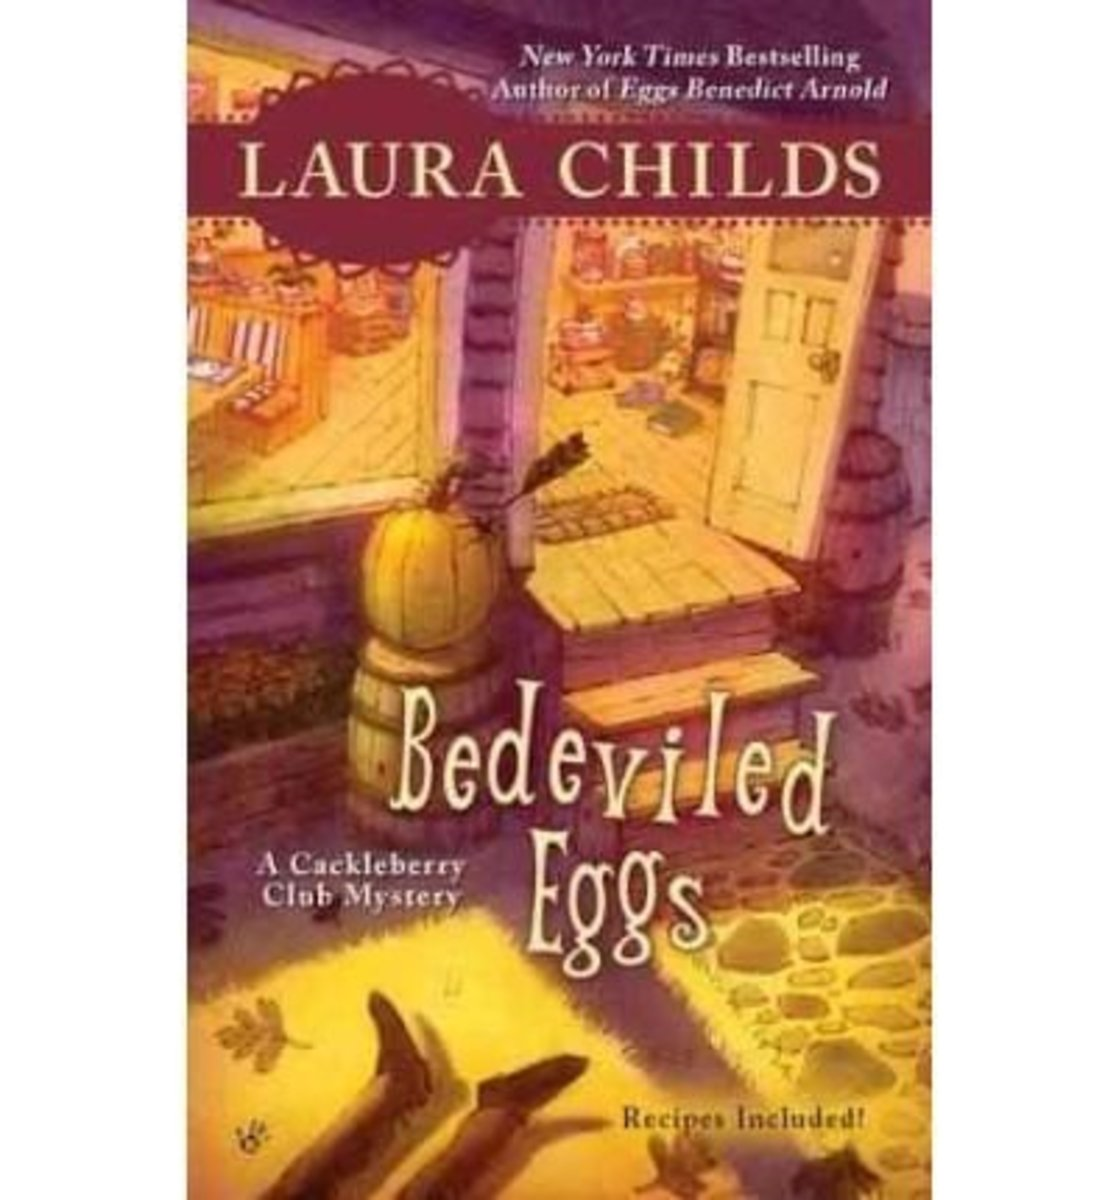 Book Review: Bedeviled Eggs by Laura Childs